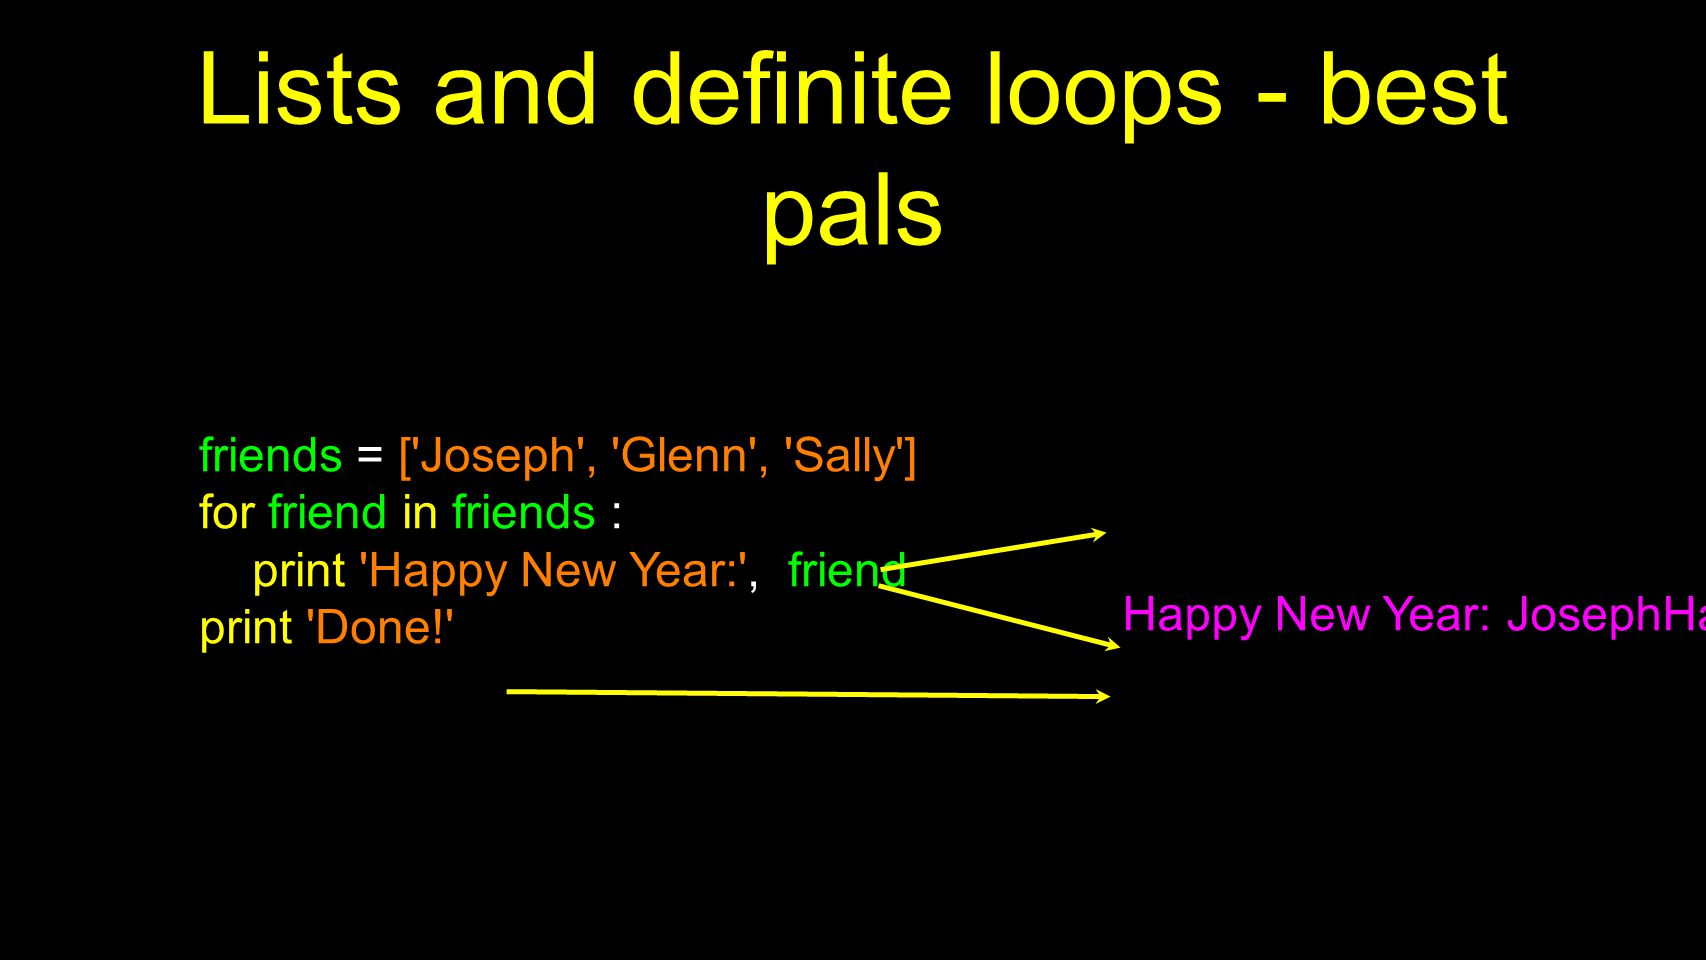 Lists and definite loops - best pals